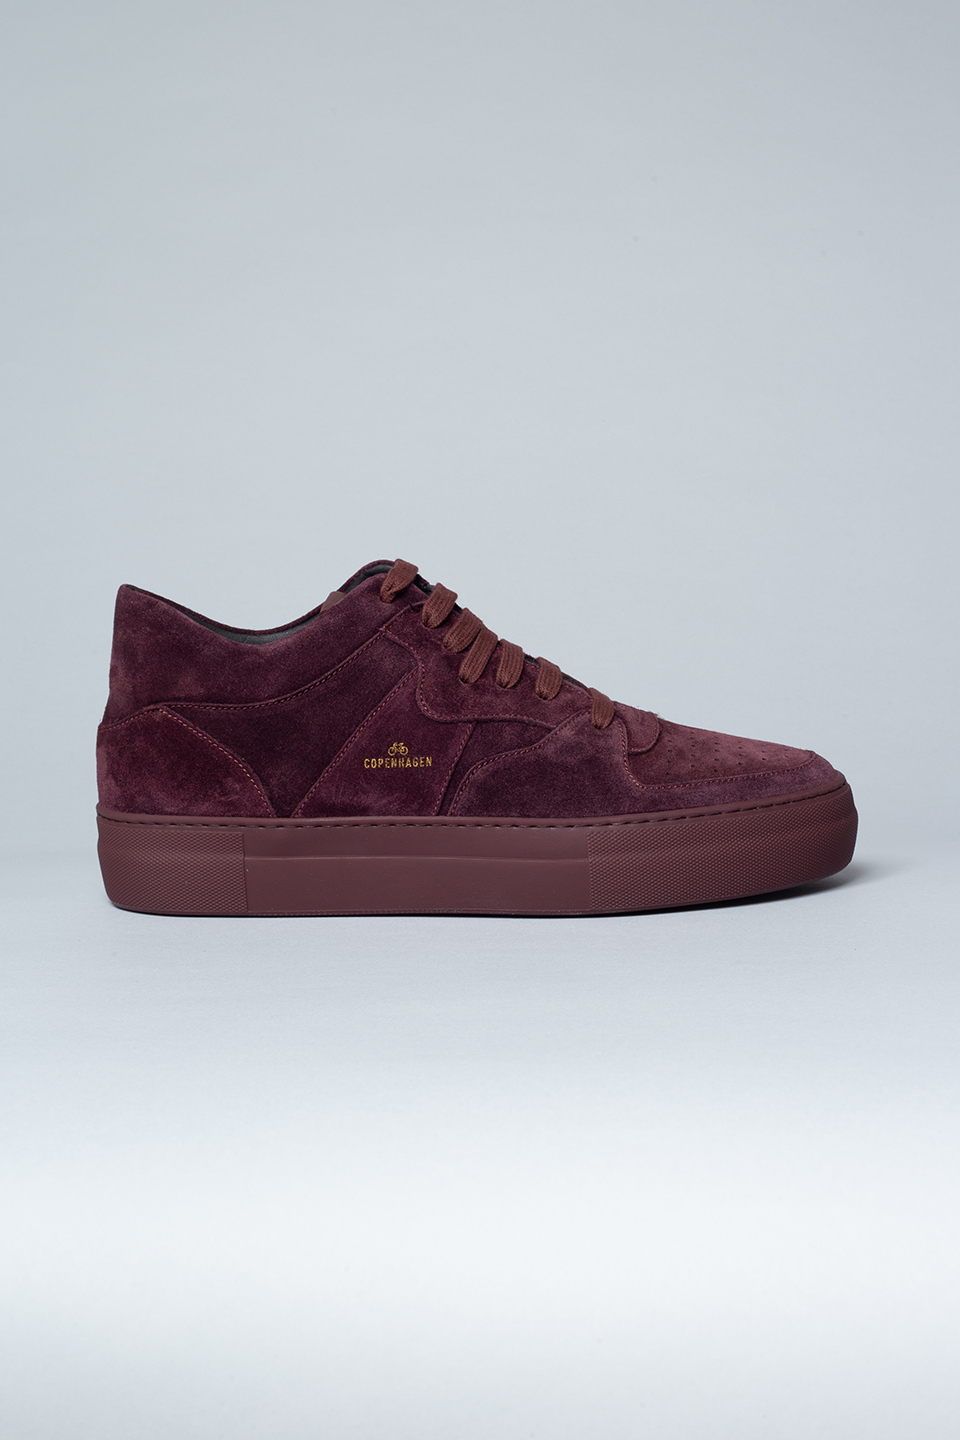 CPH36M crosta wood berry - alternative 1